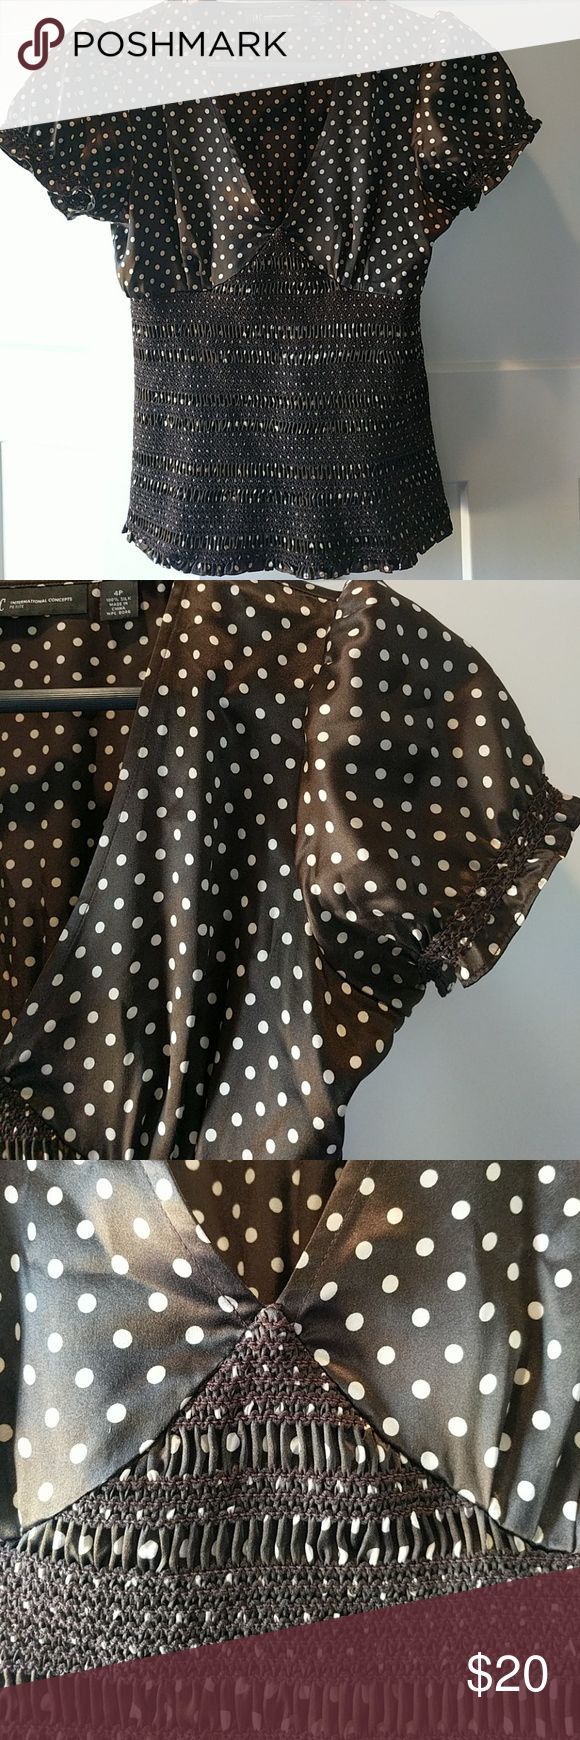 """INC 100% silk classic style halter 4P 100% silk chocolate brown, and cream color polka dots.  Excellent condition.  Dry clean only.  20.5"""" top to bottom; 15"""" arm pit to arm pit. INC International Concepts Tops Camisoles"""